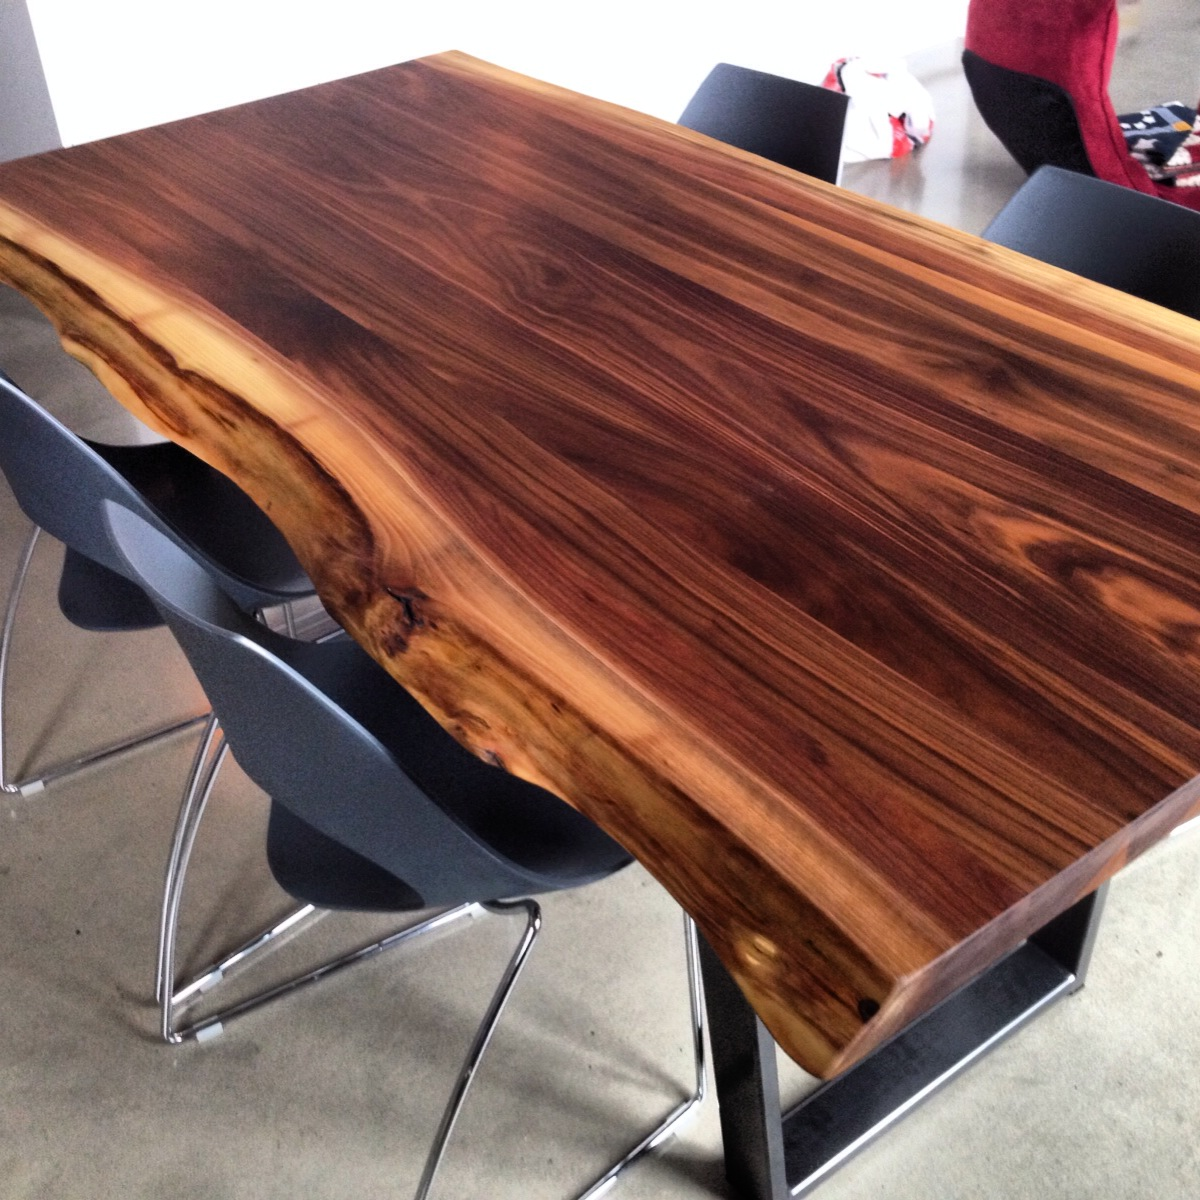 Table Noyer Massif 2loons Tables En Noyer Massif Mikaza Meubles Modernes